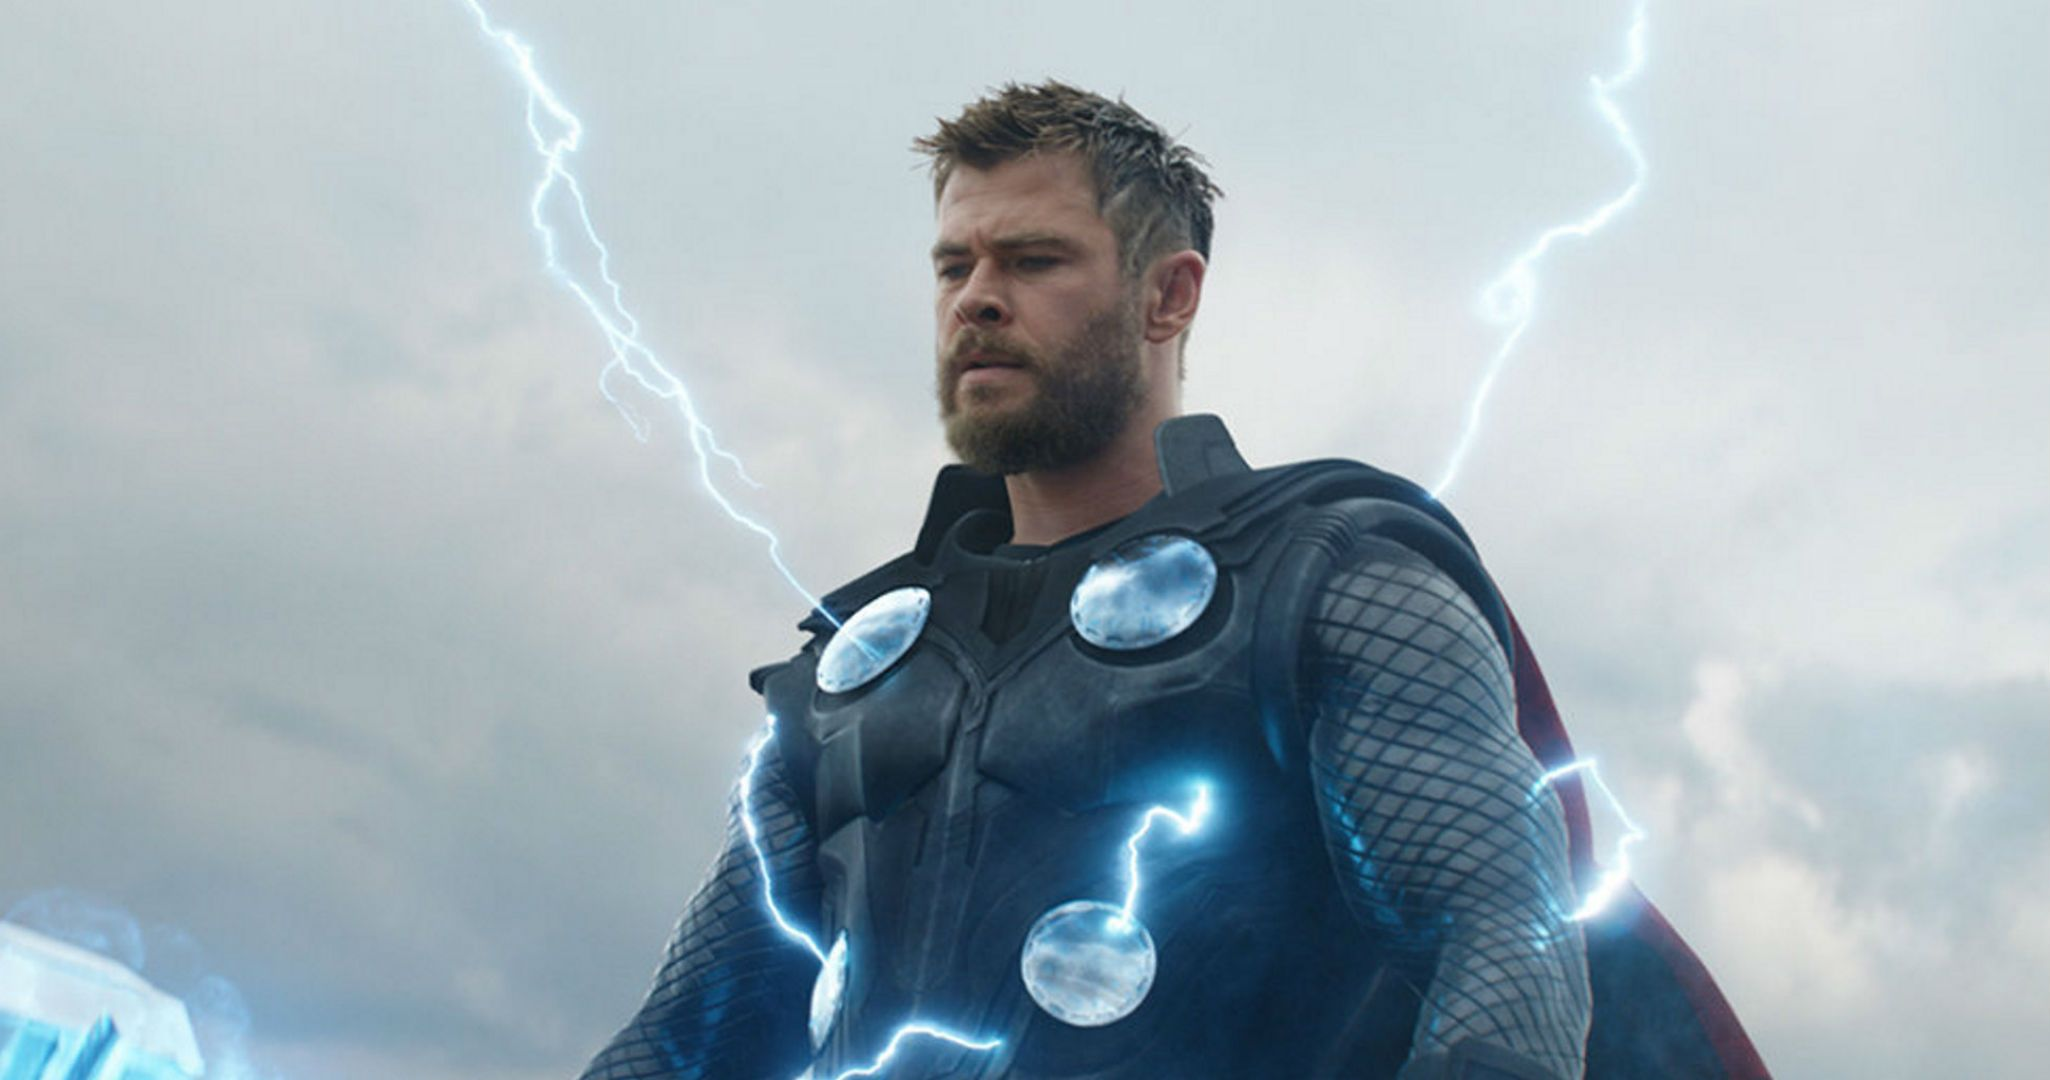 Avengers: Endgame writers explain why they were never going to kill off Thor